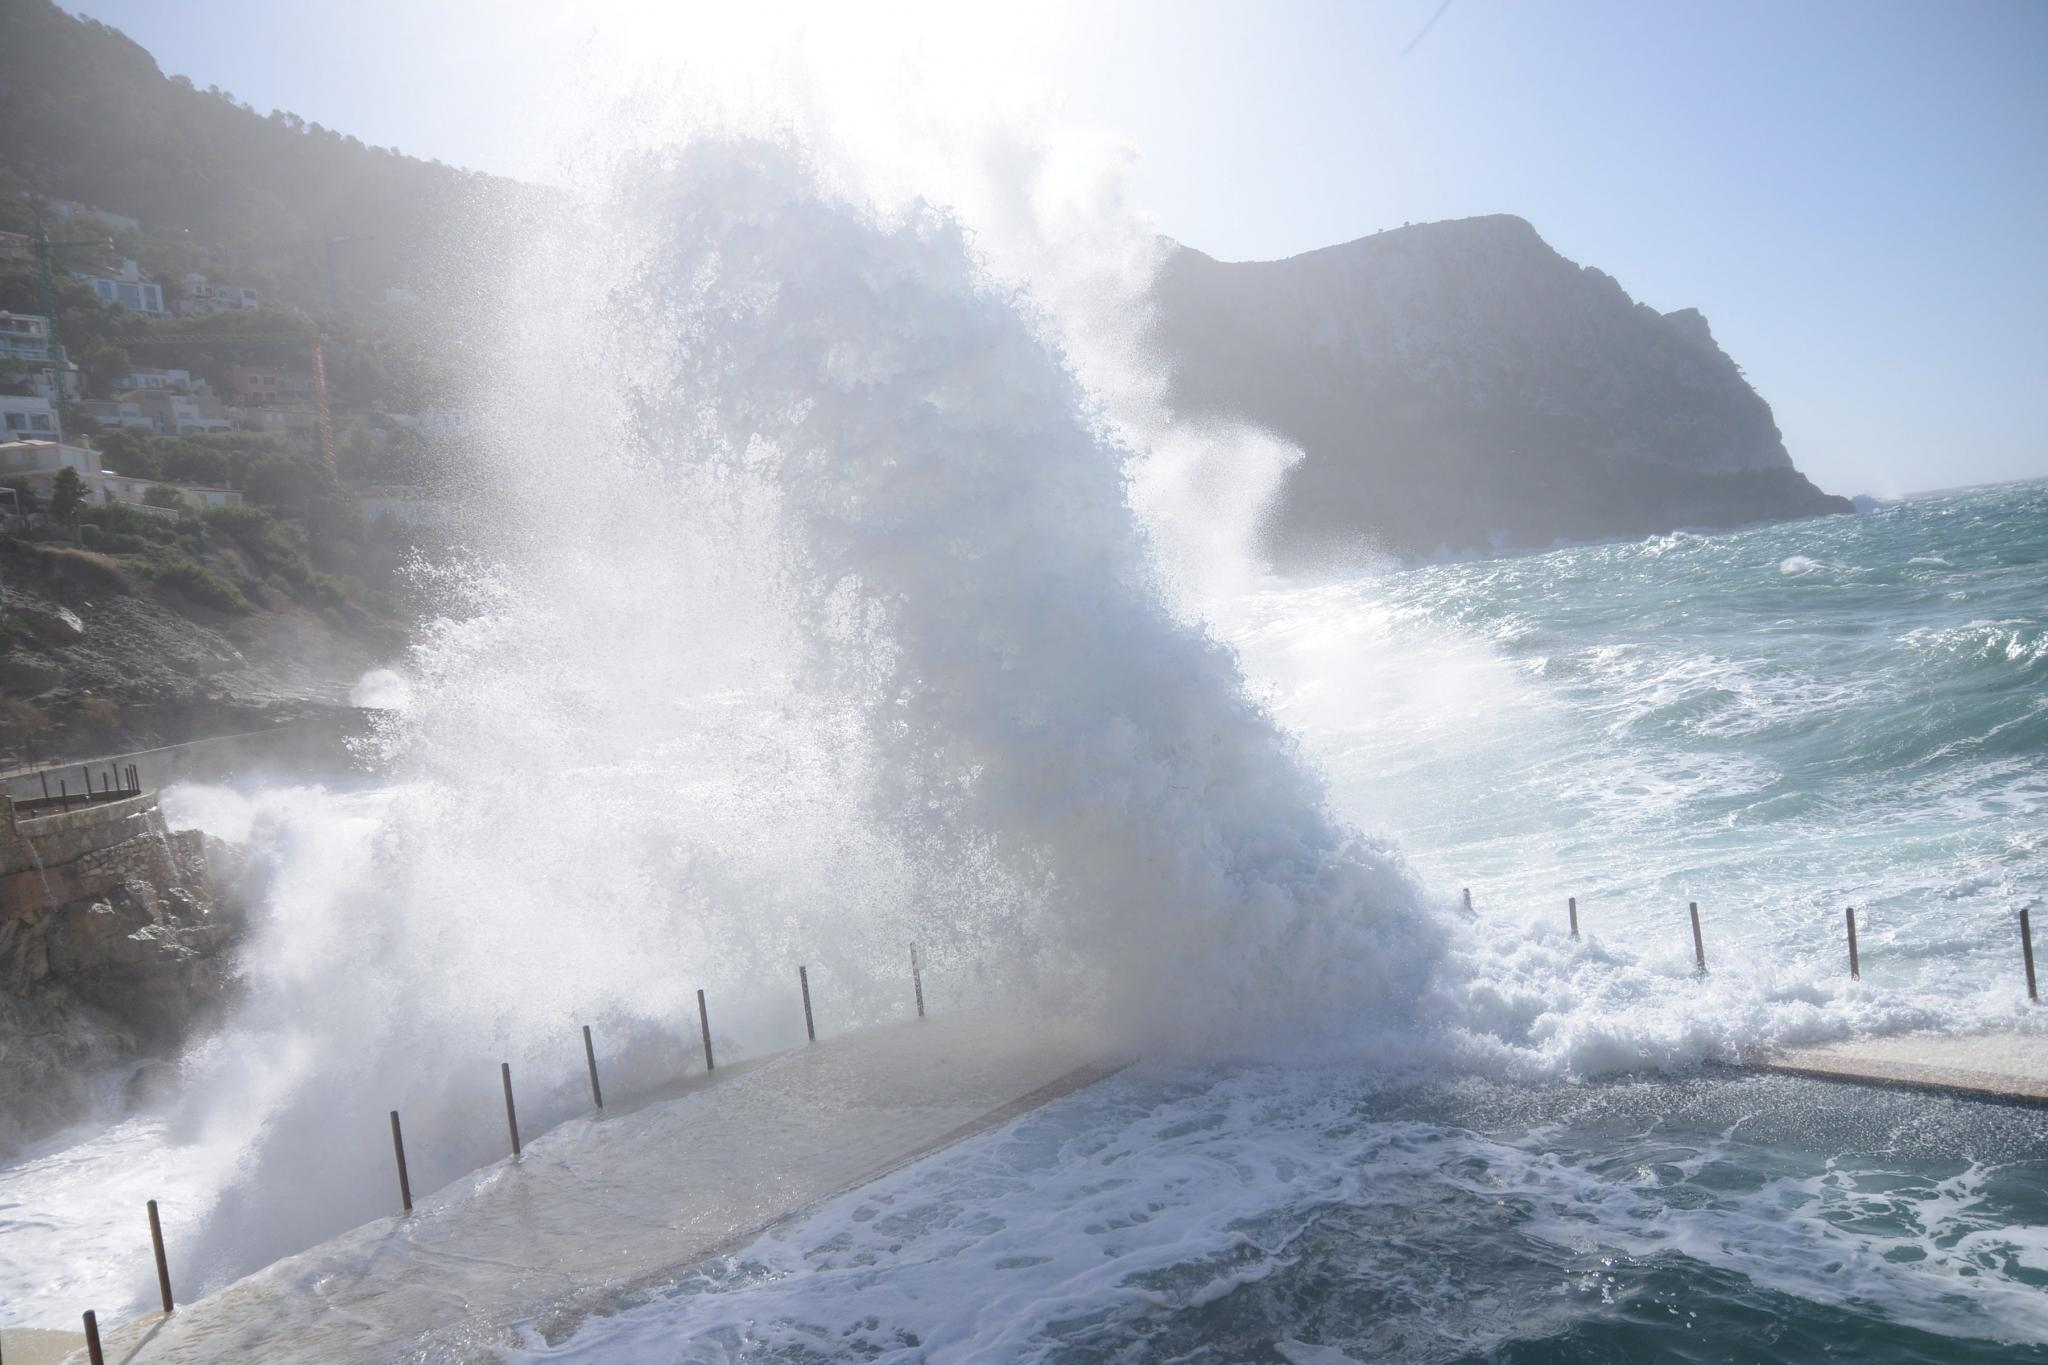 High winds hit Majorca over the weekend